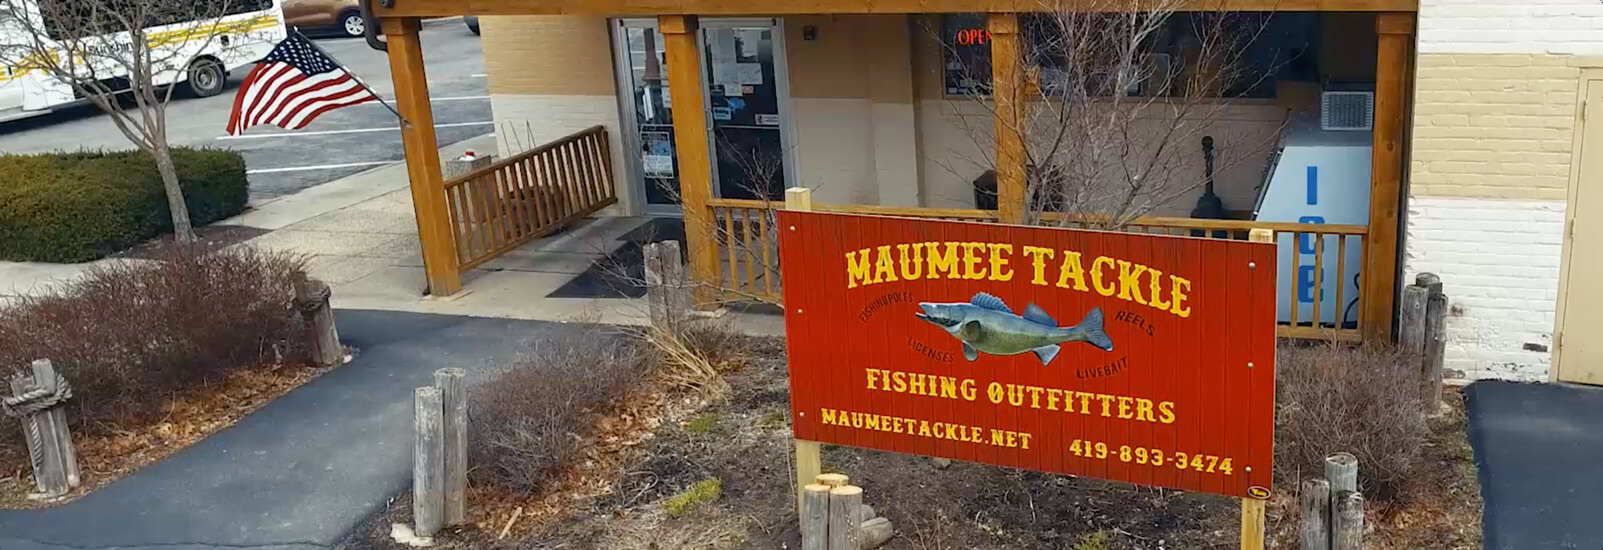 Maumee river Report March 2, 2020